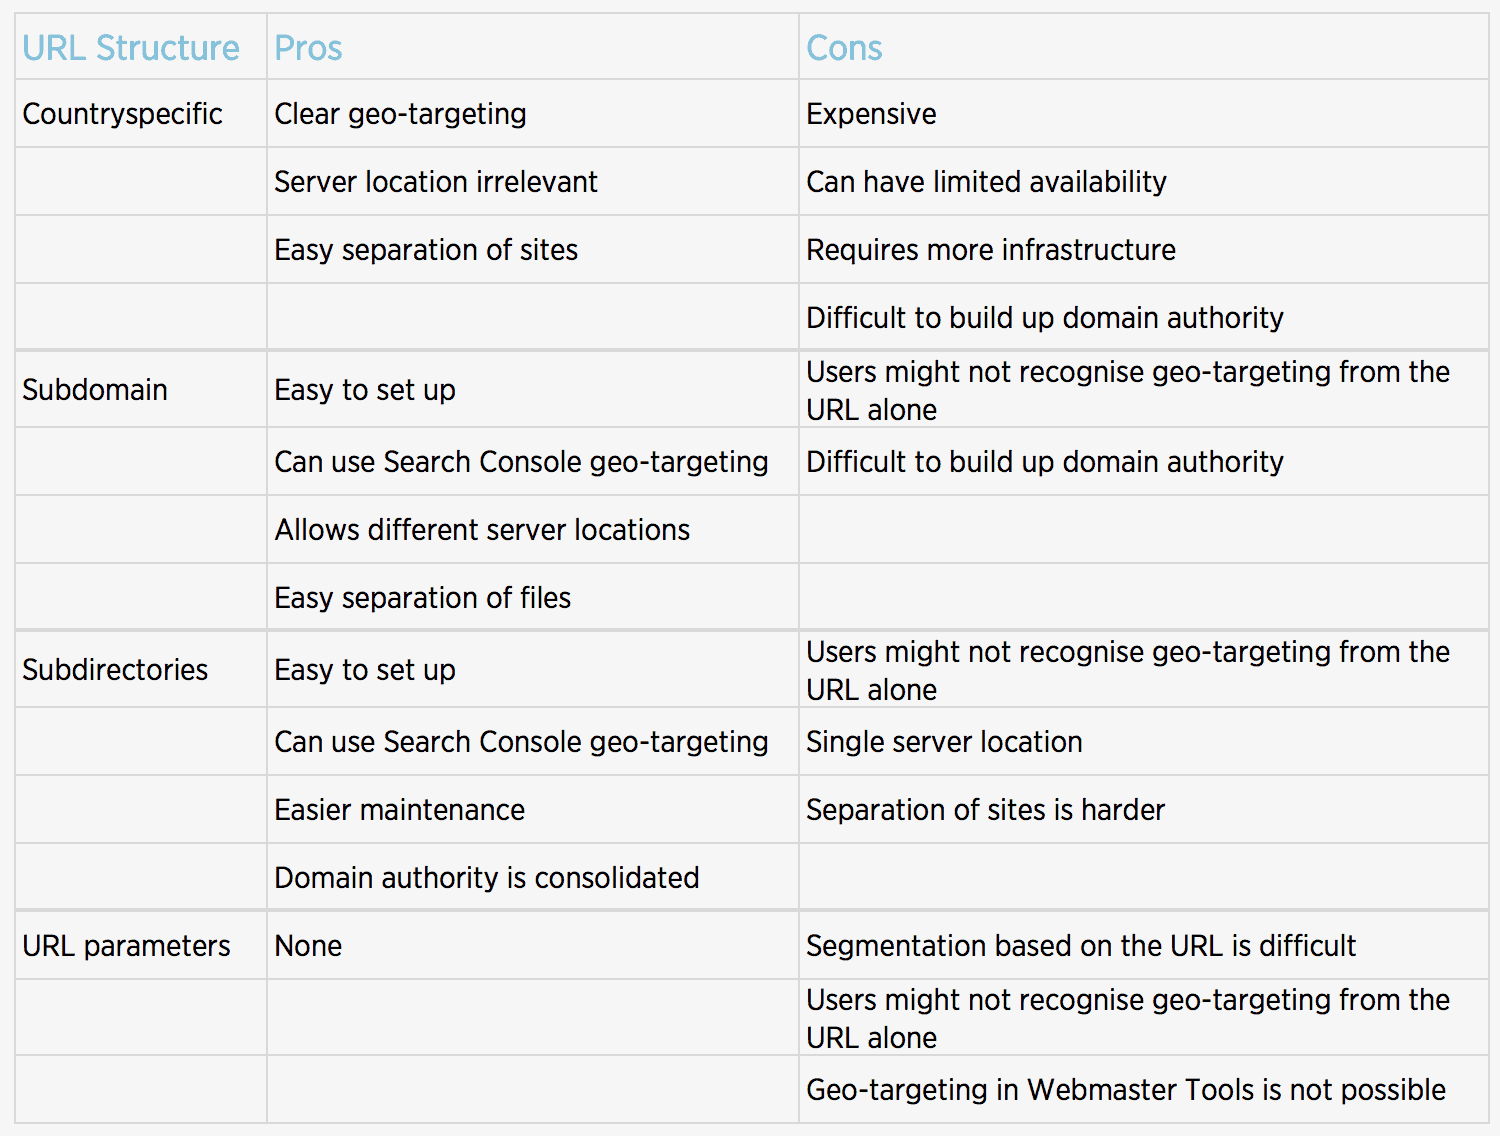 URL structure table